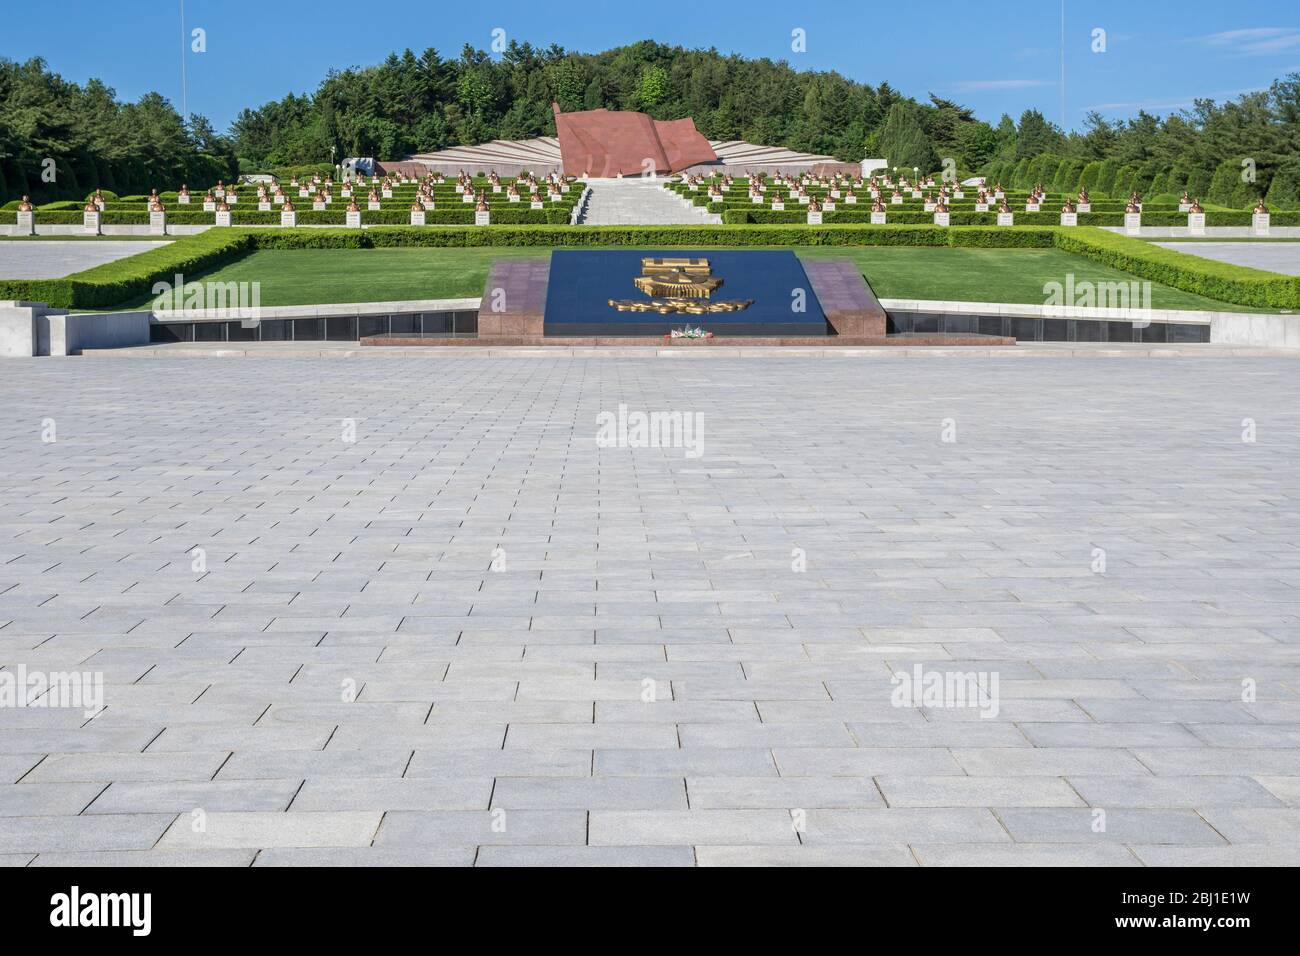 Giant stone flag of the Taesongsan revolutionary martyr's cemetery, Pyongan Province, Pyongyang, North Korea Stock Photo